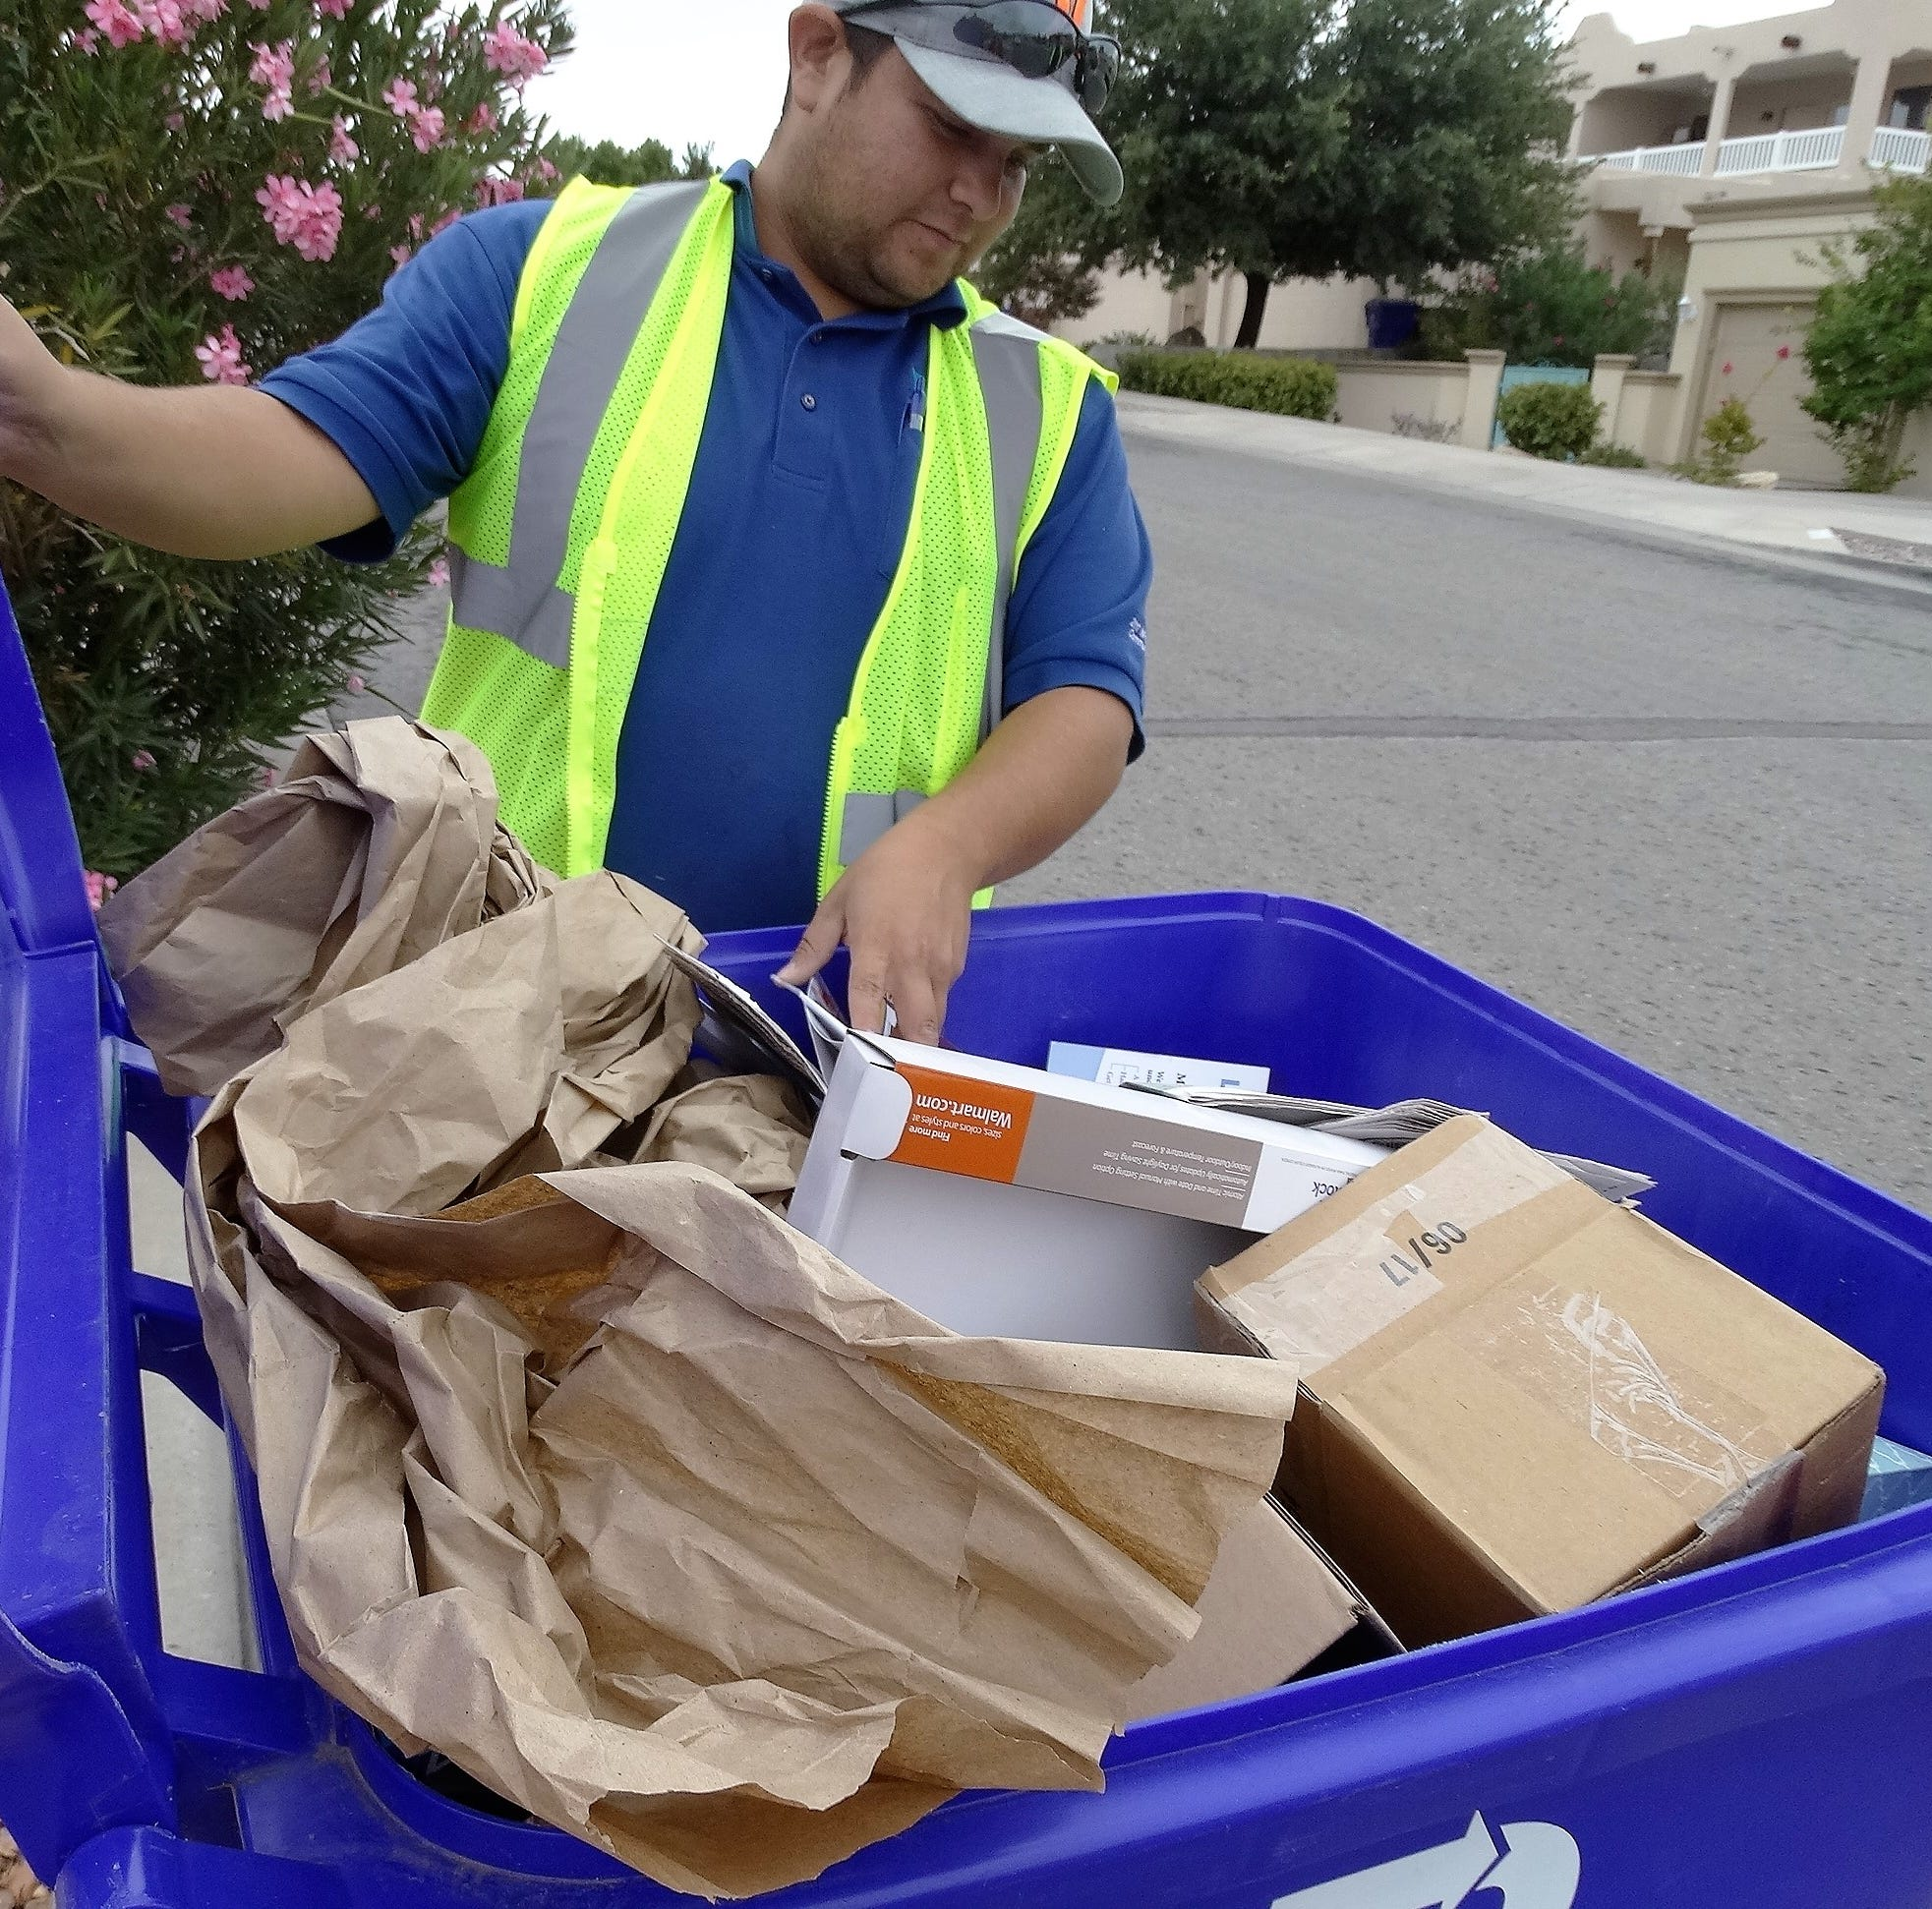 City to inspect recycling bins for contamination